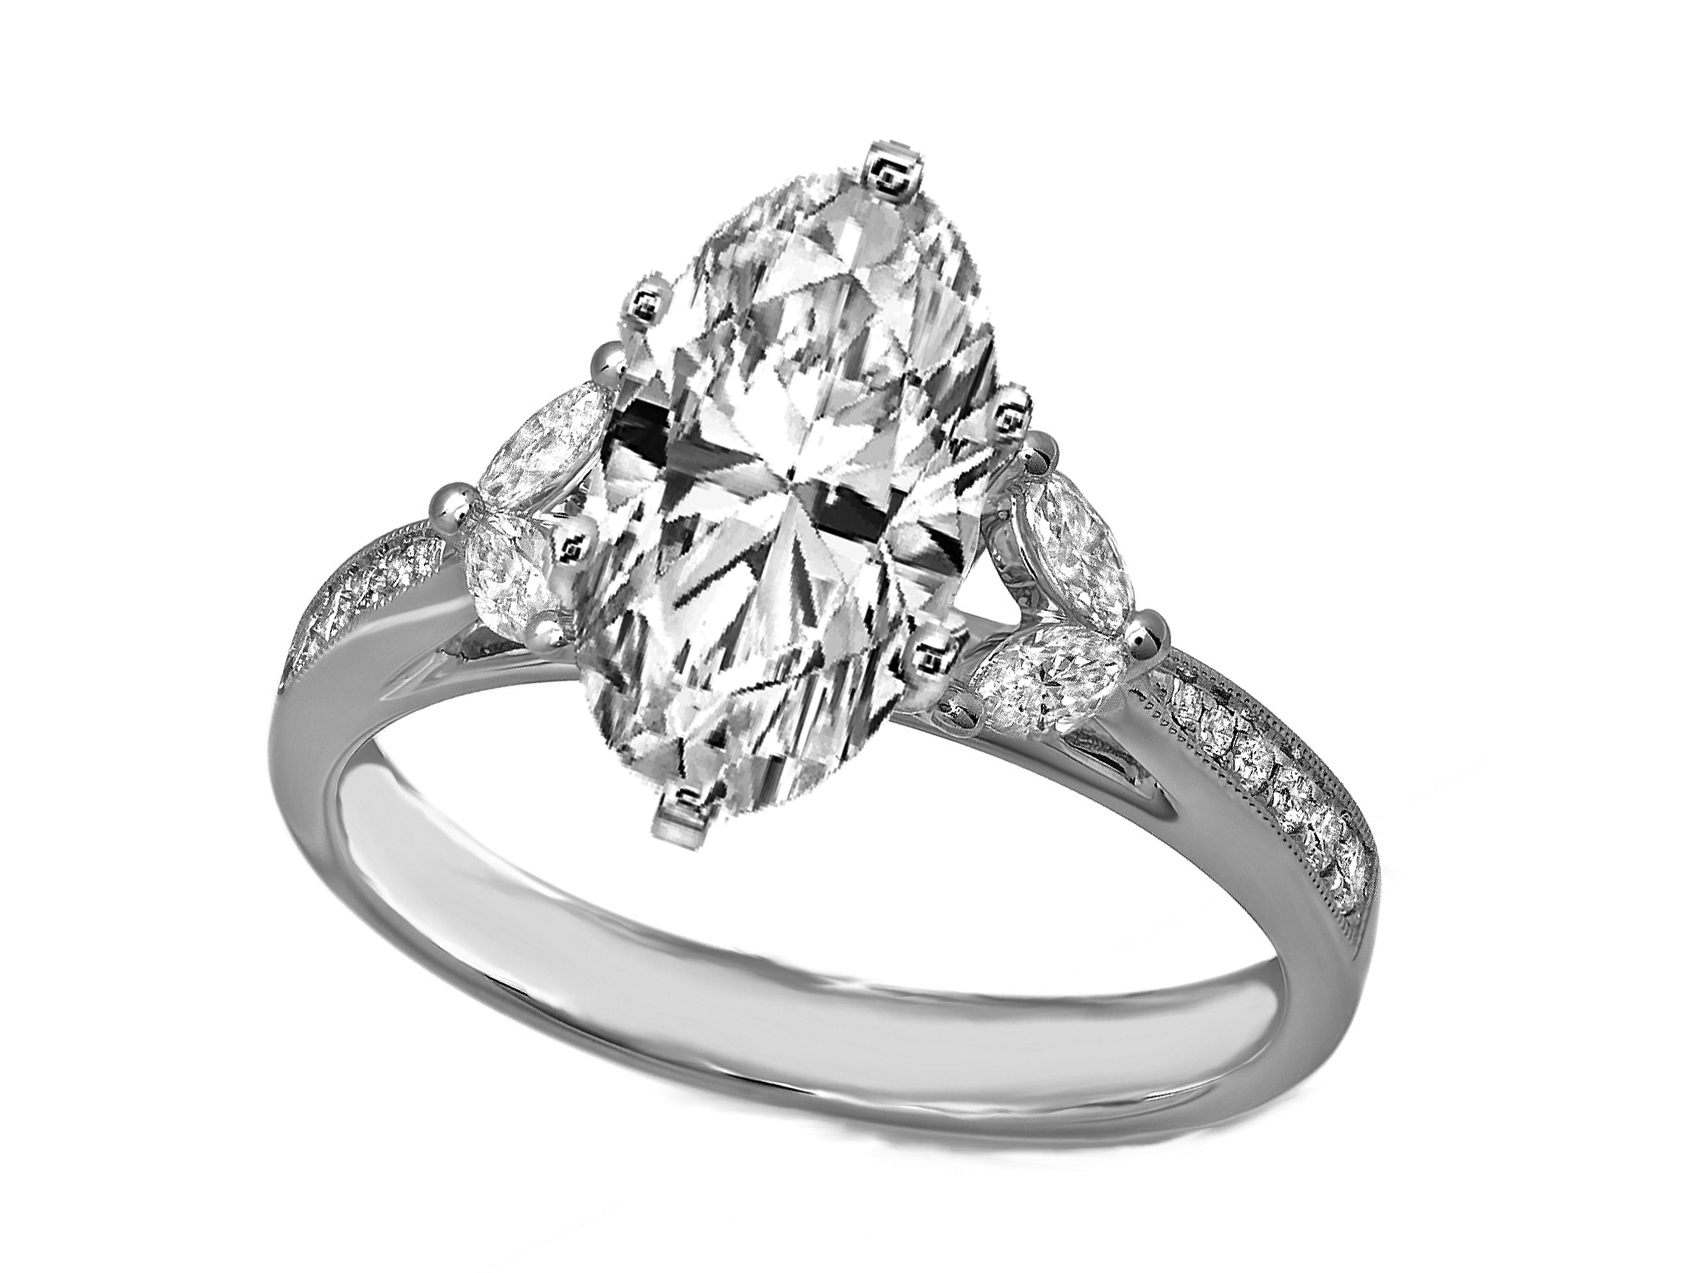 classics alexis ring by bezel cathedral diamond channel with a engagement jaffe product profile rings house